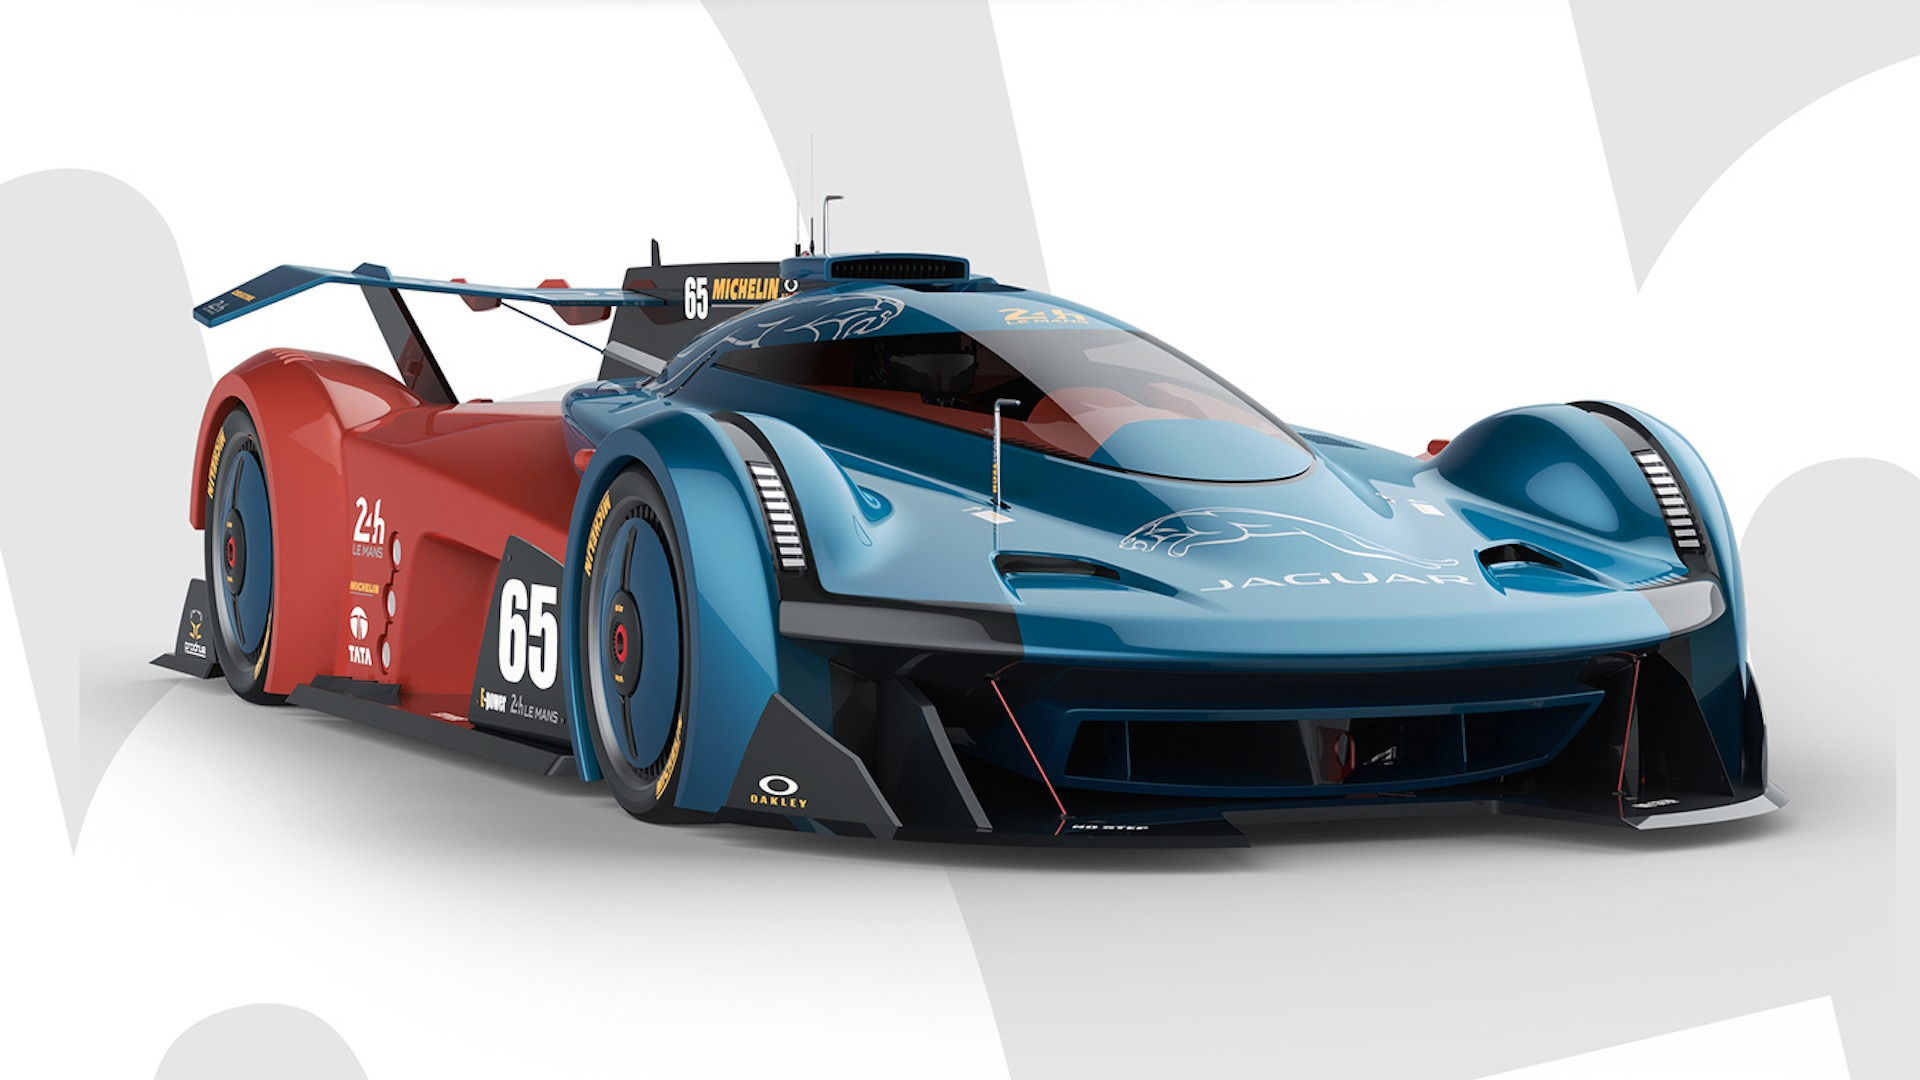 Jaguar Le Mans Rendering Imagines An Xj220 Of The Future